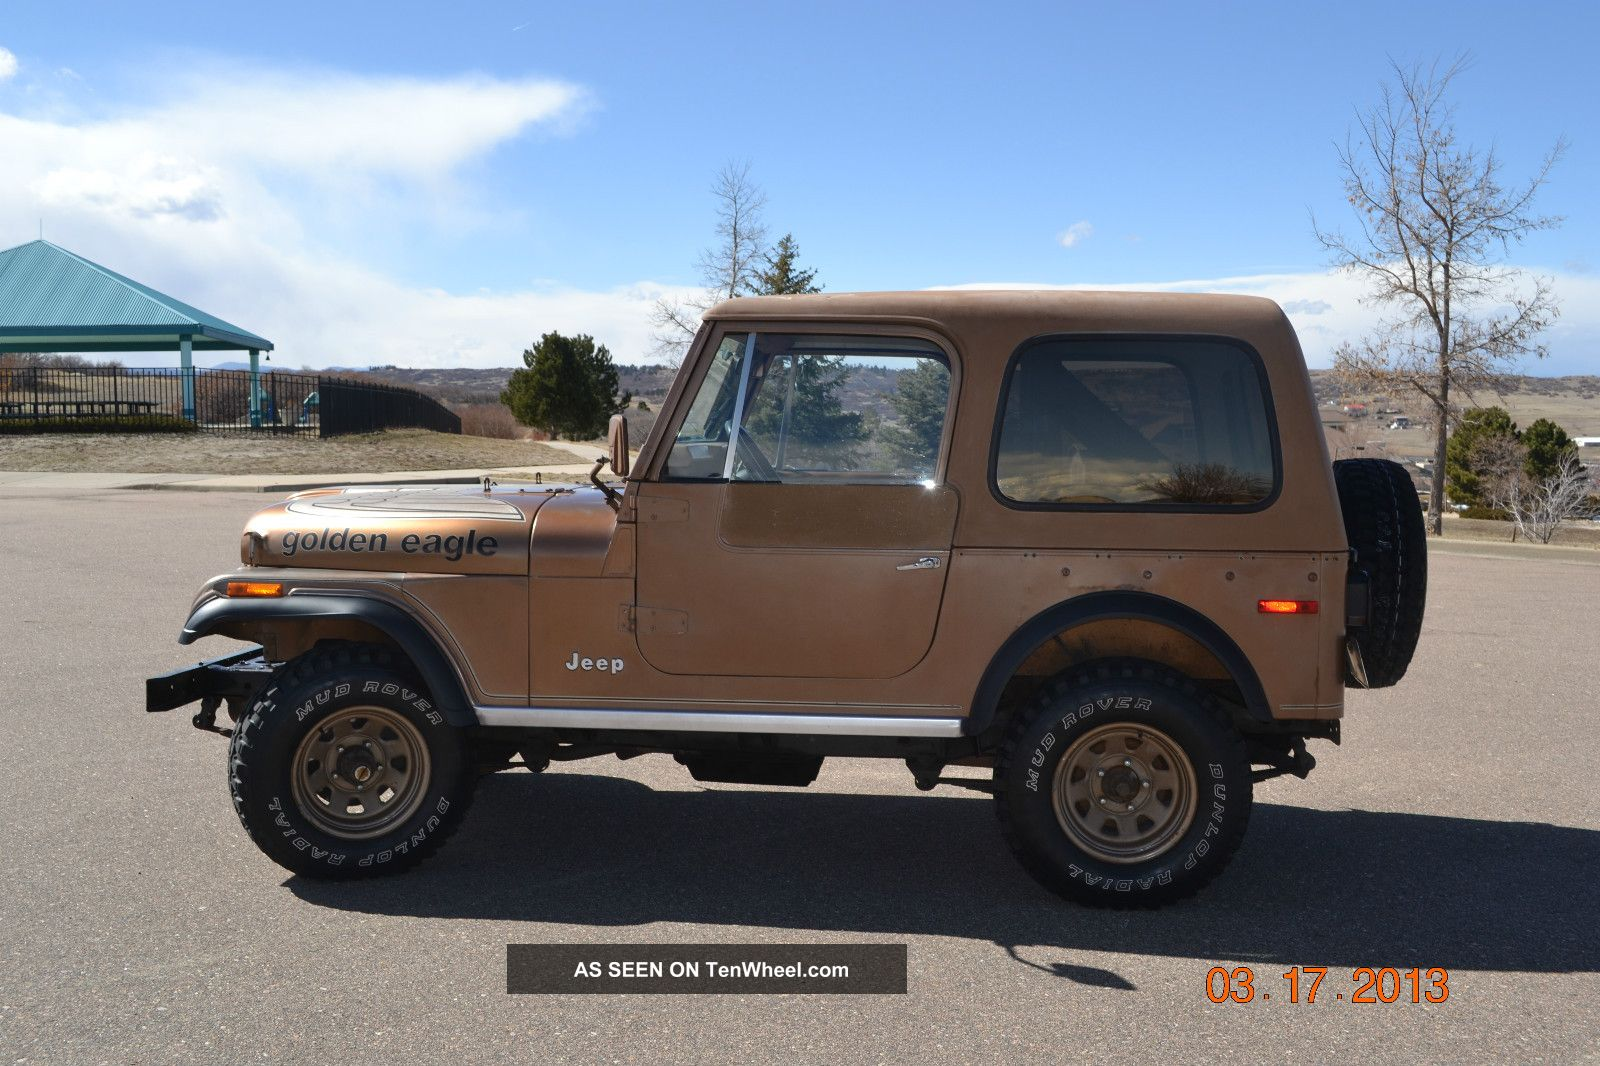 hight resolution of 1979 jeep cj7 golden eagle special order package 304 v8 4 speed photo